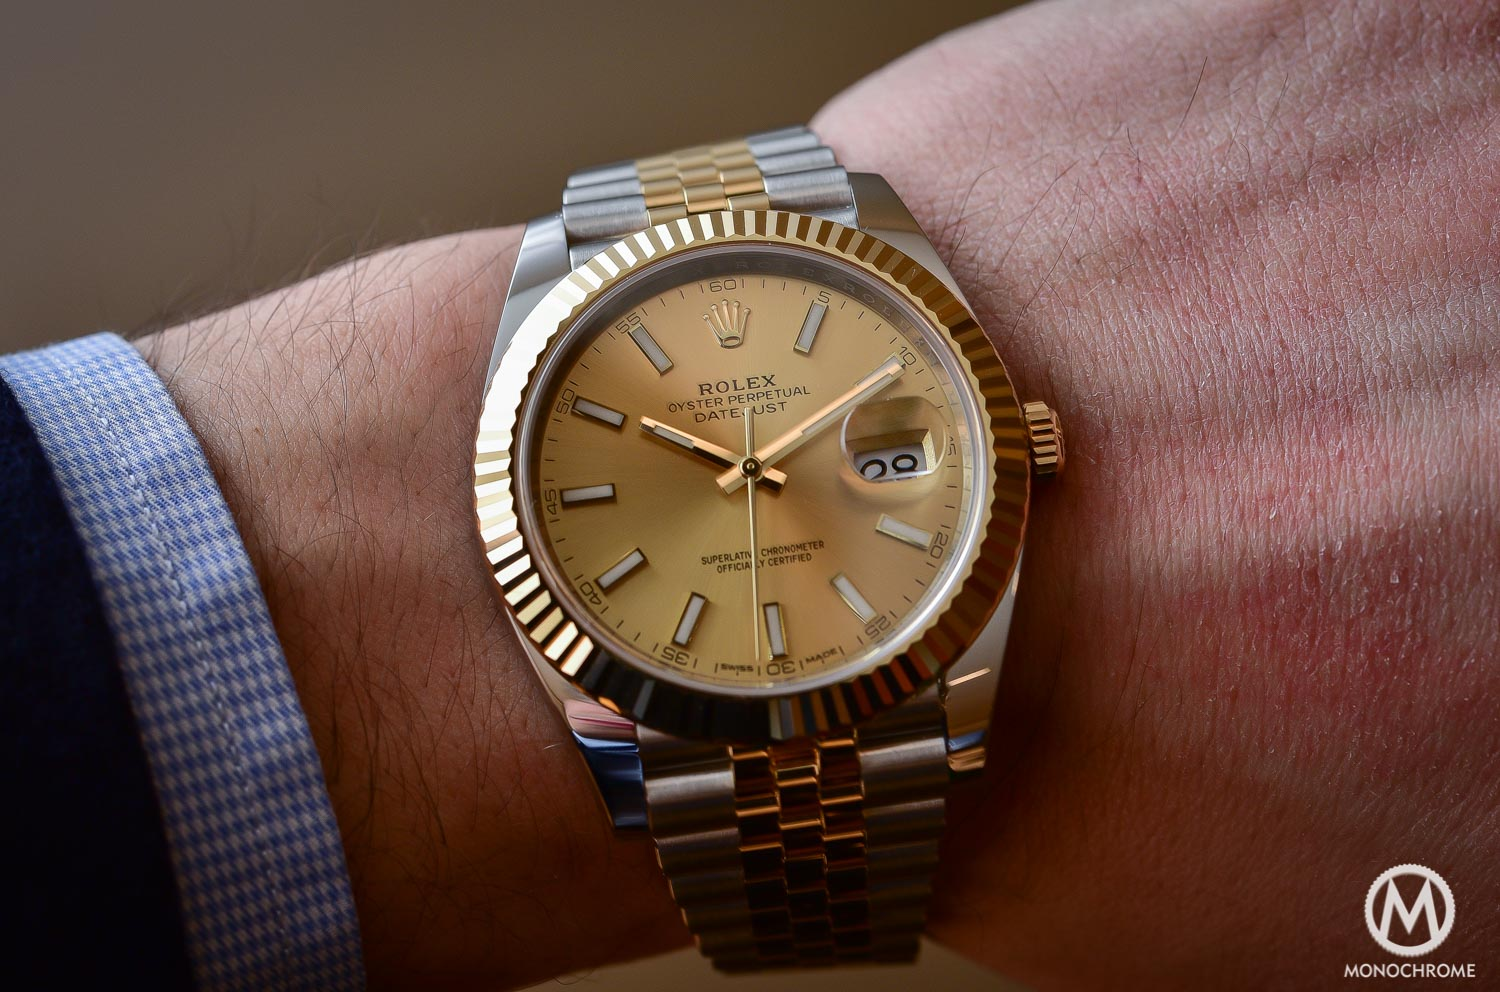 Rolex Datejust 41 126333 - Baselworld 2016 - Review - on the wrist